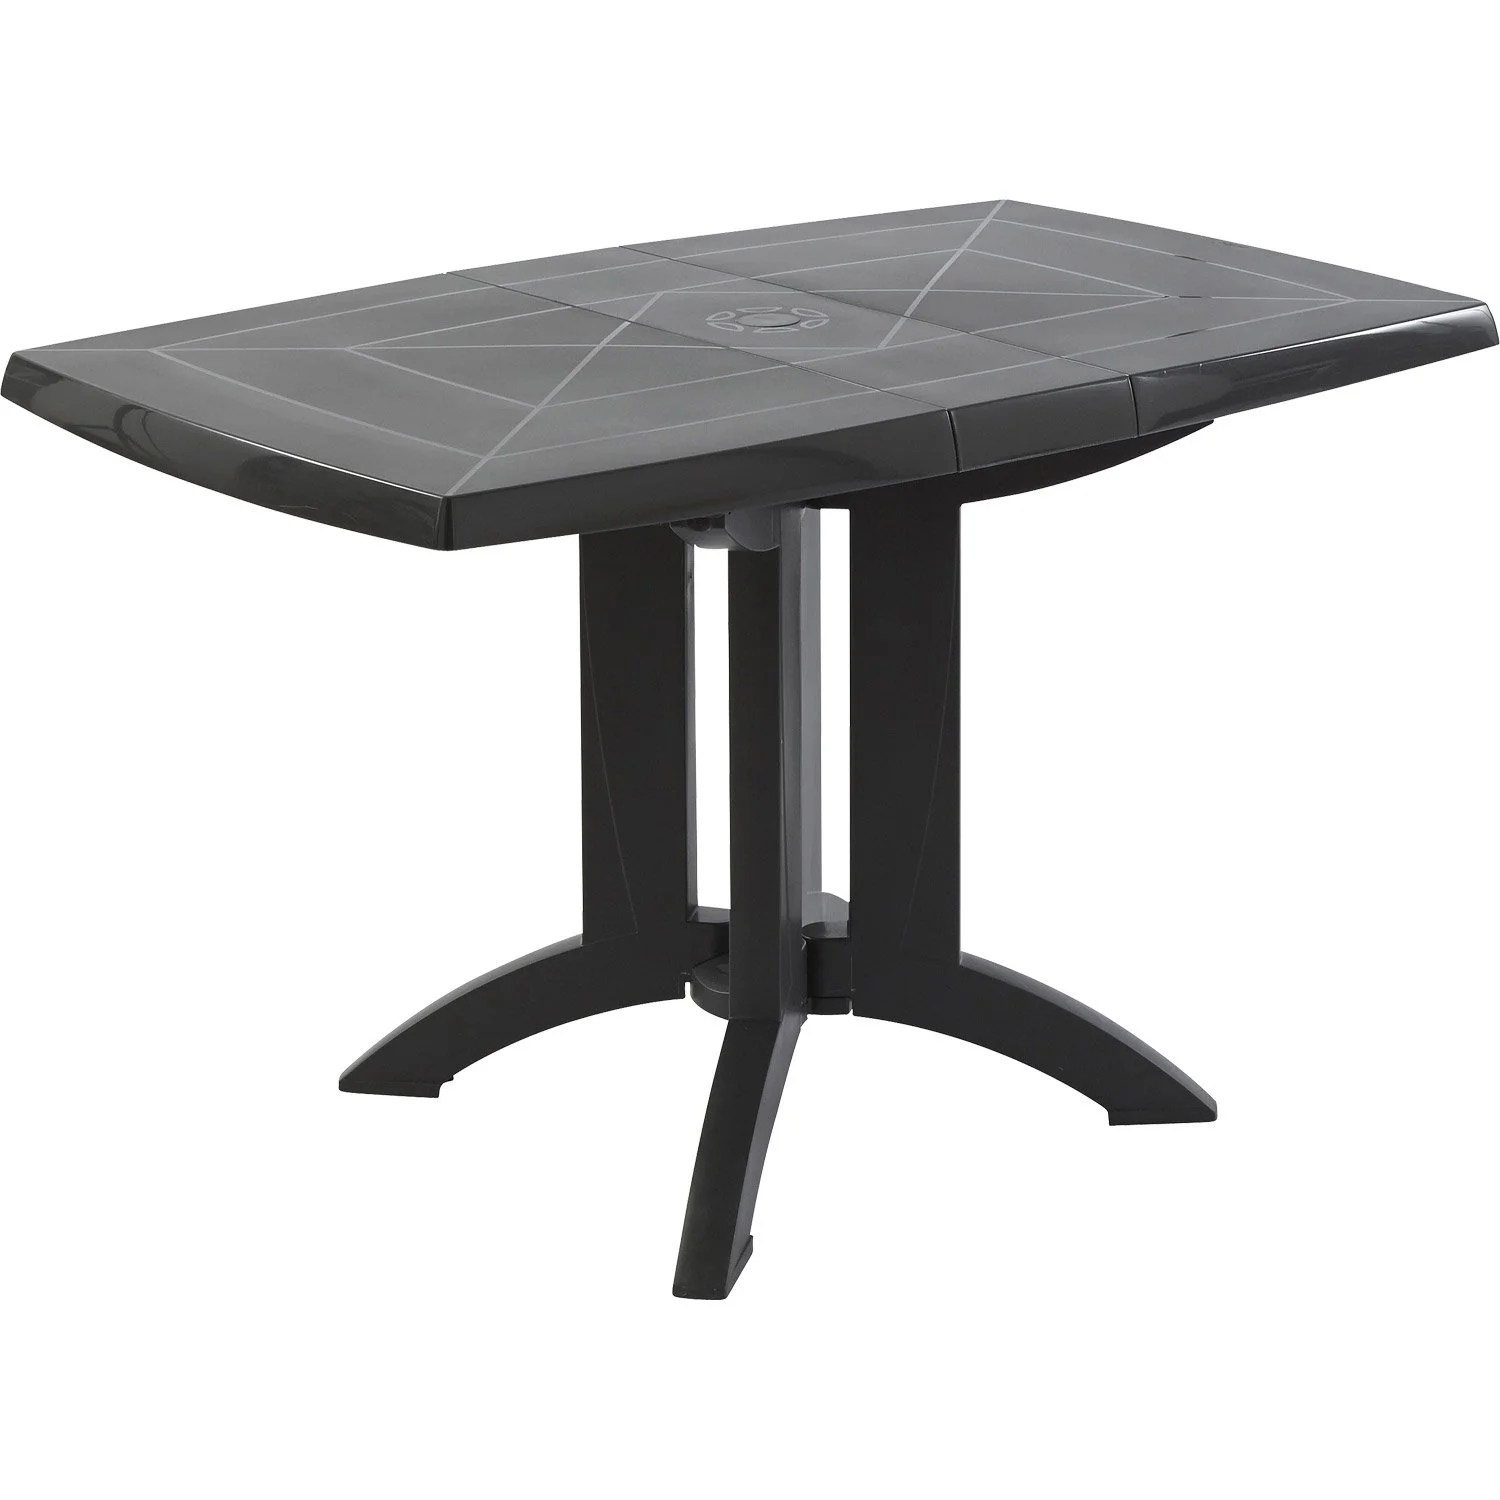 Table Pliable Leroy Merlin Table De Jardin De Repas Grosfillex Véga Rectangulaire